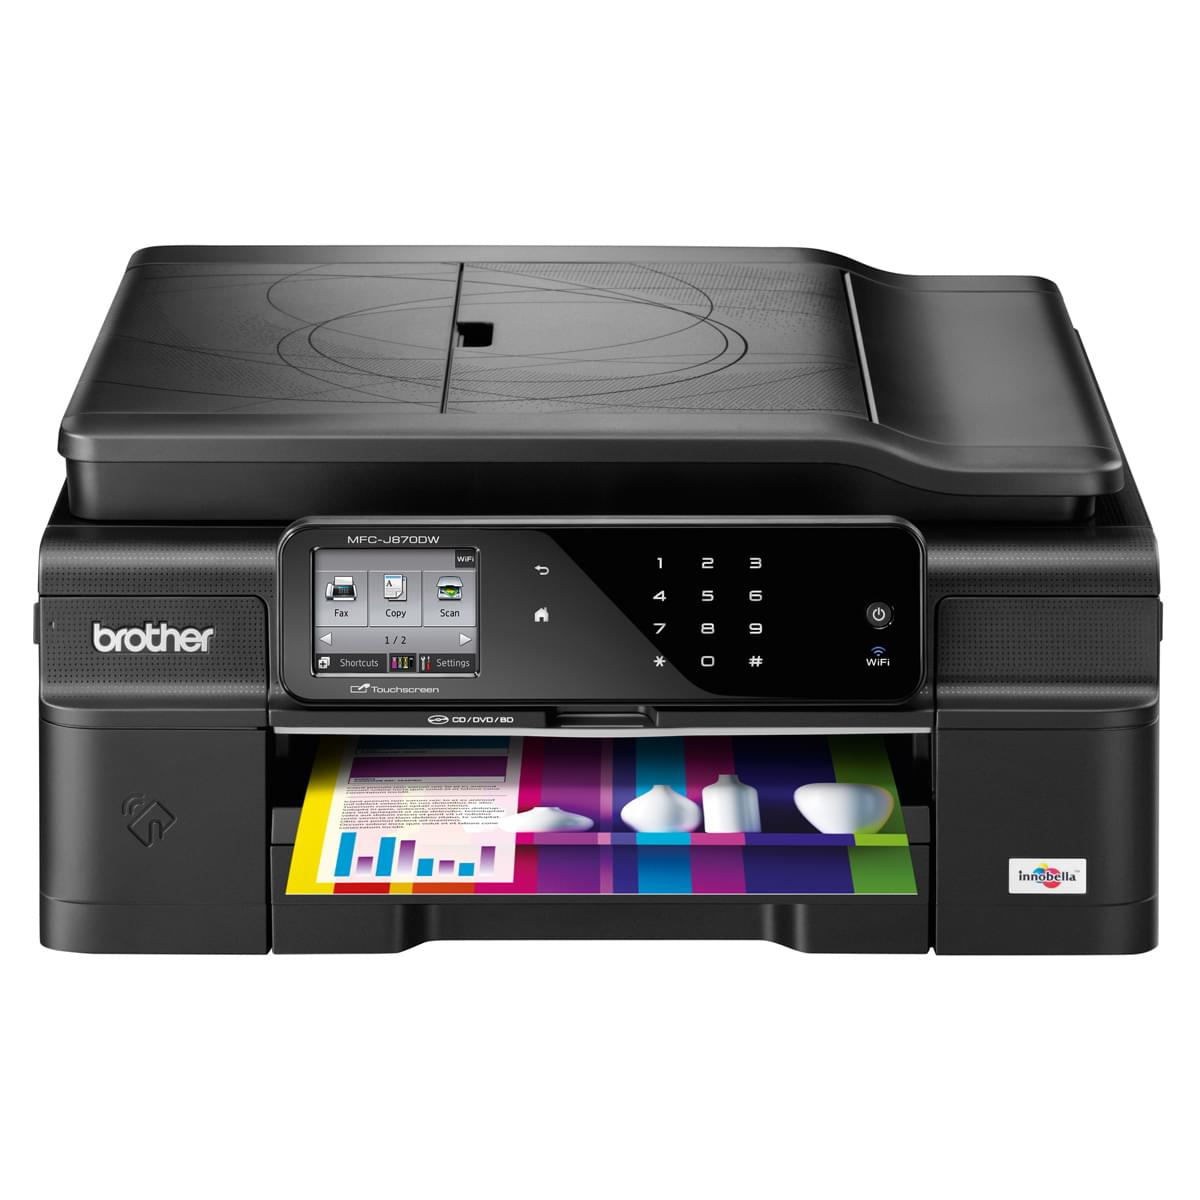 Brother MFC-J870DW (MFCJ870DWF1 arret work-it) - Achat / Vente Imprimante Multifonction sur Cybertek.fr - 0